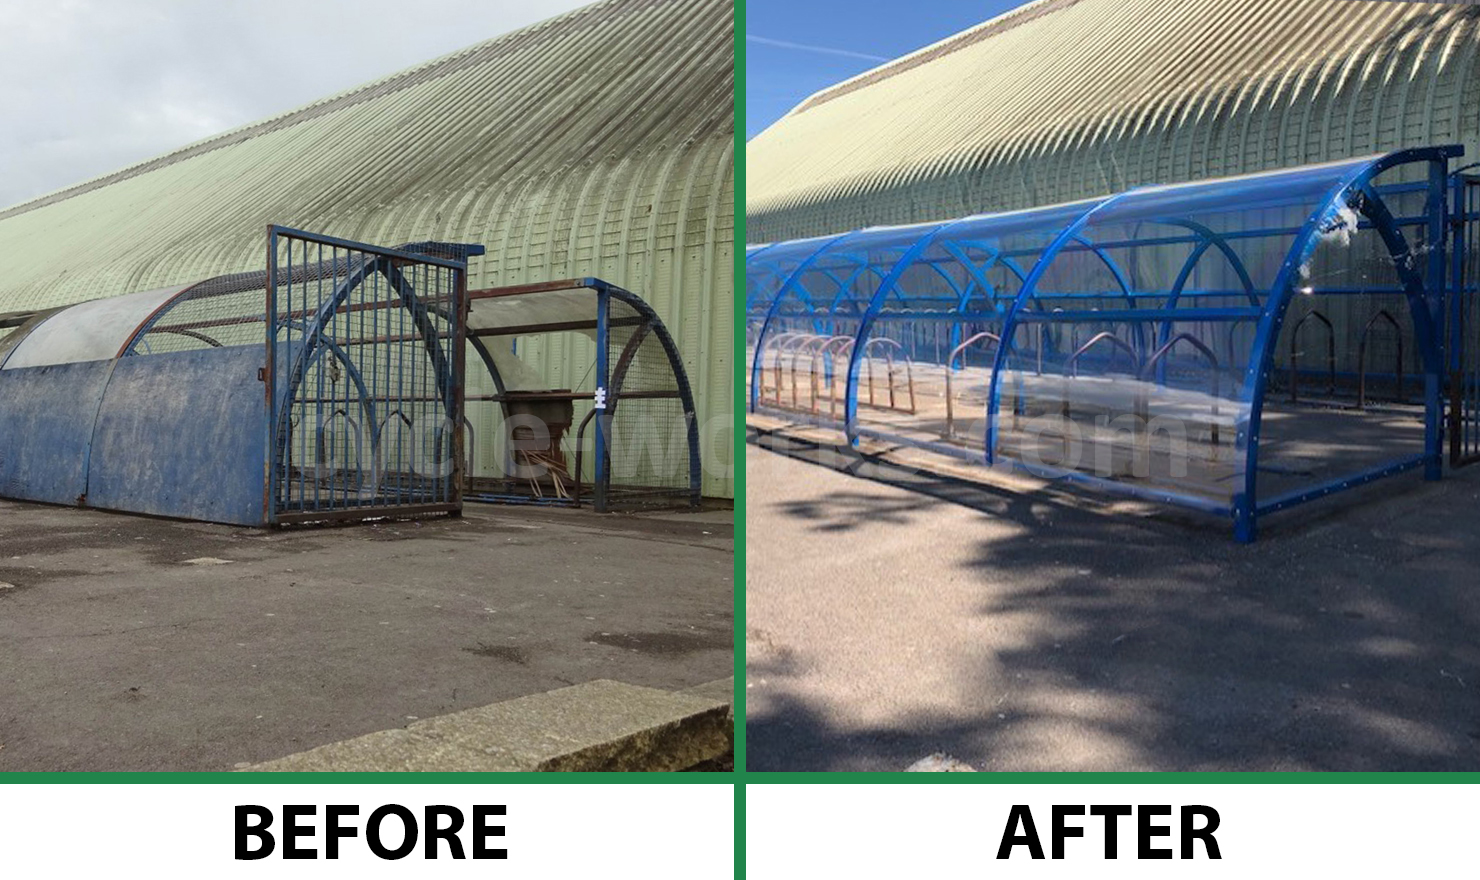 Bike Shelter Refurbishment Before and After